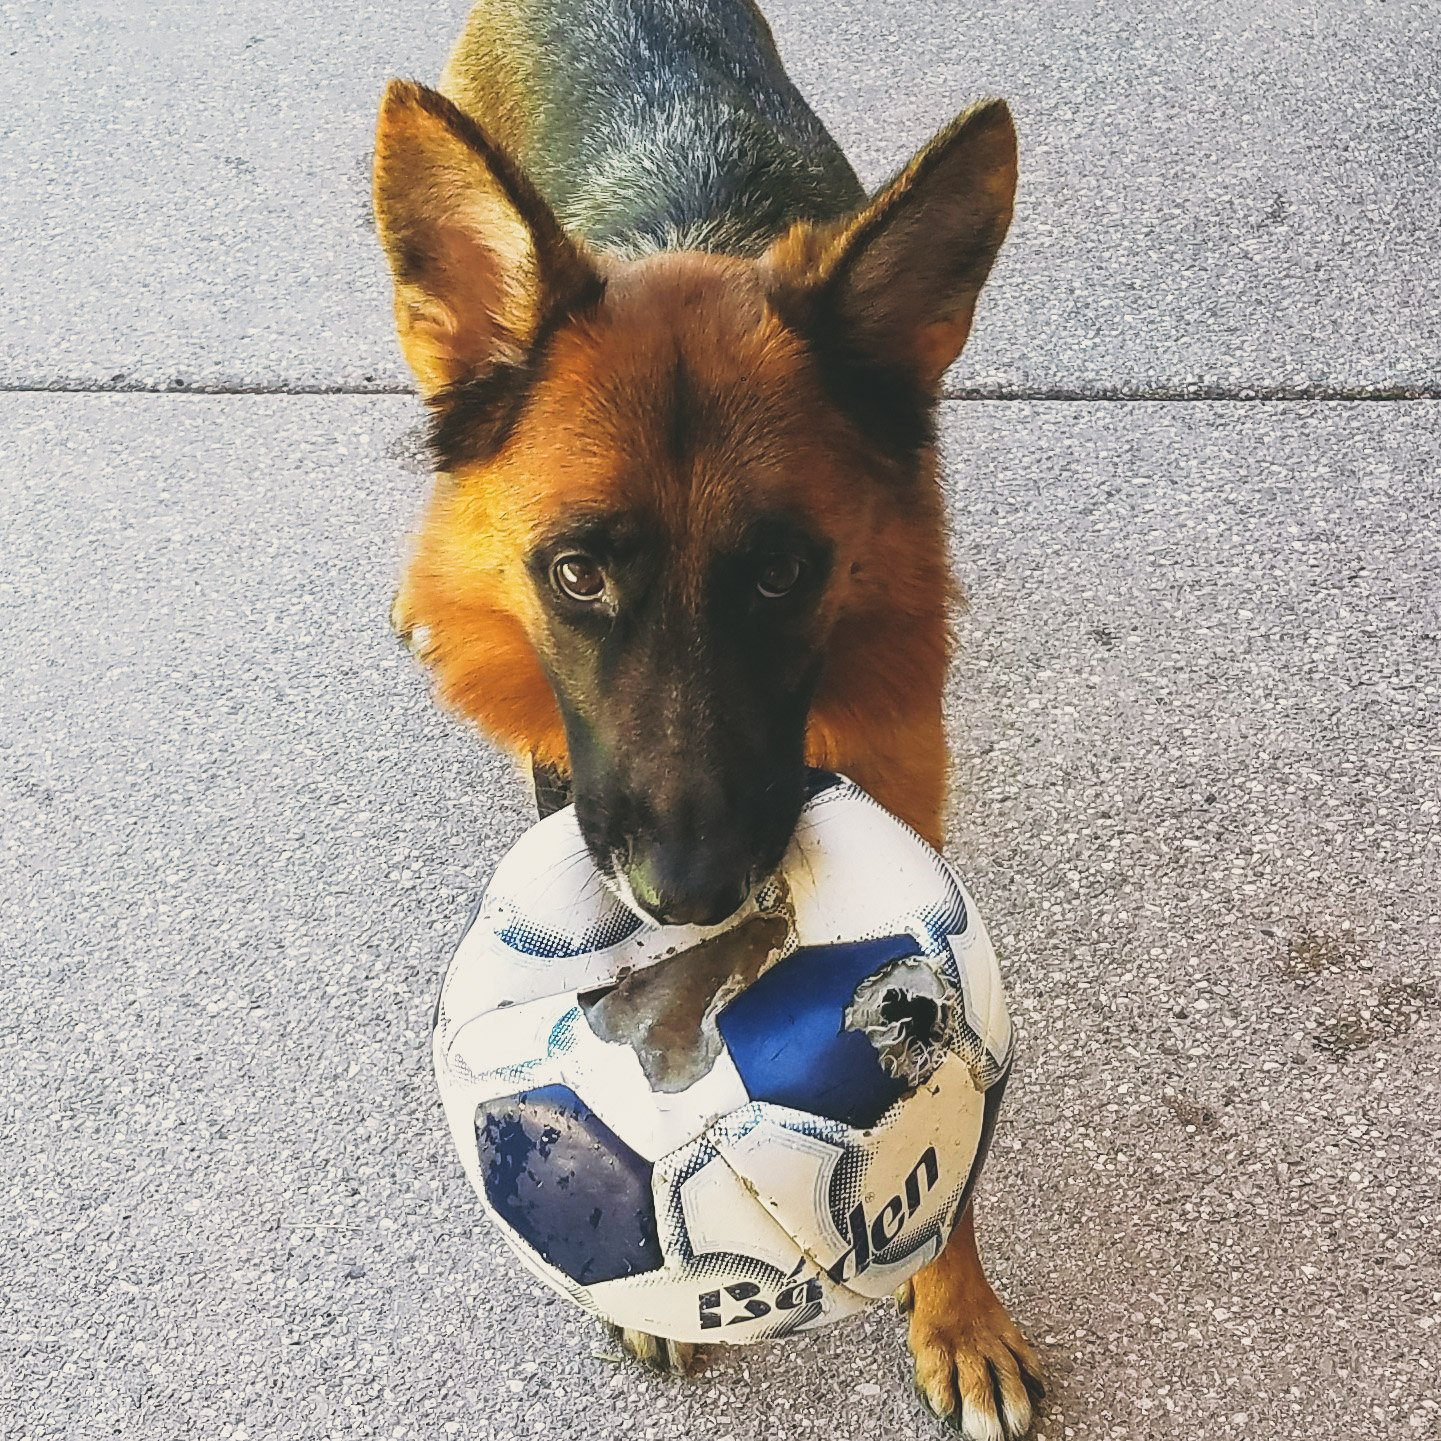 Dog holding soccer ball in mouth